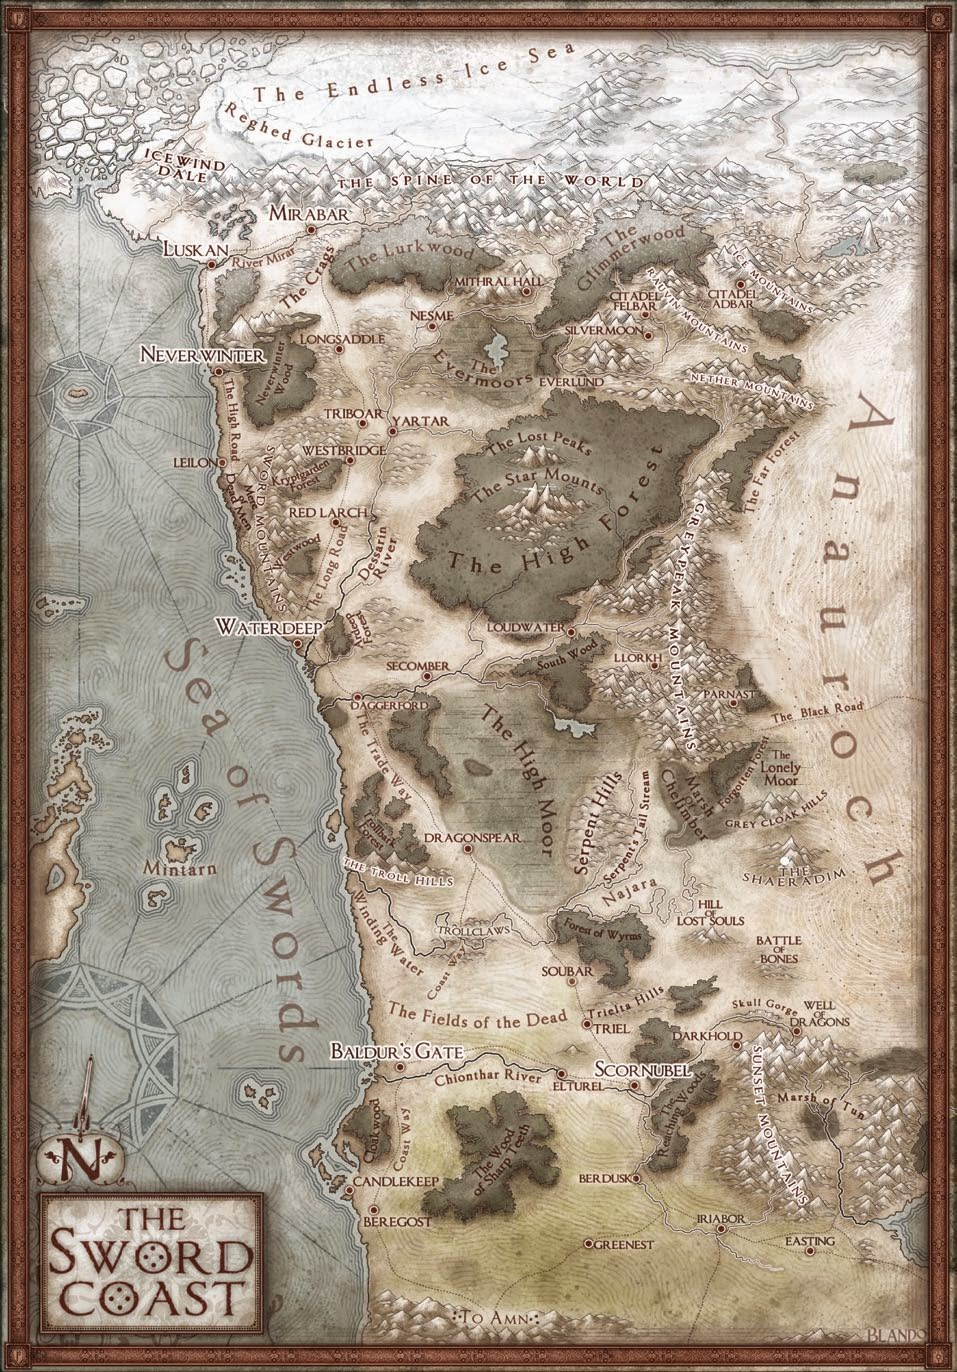 Map_-_Sword_Coast_x_Page_1_Image_0001.jpg